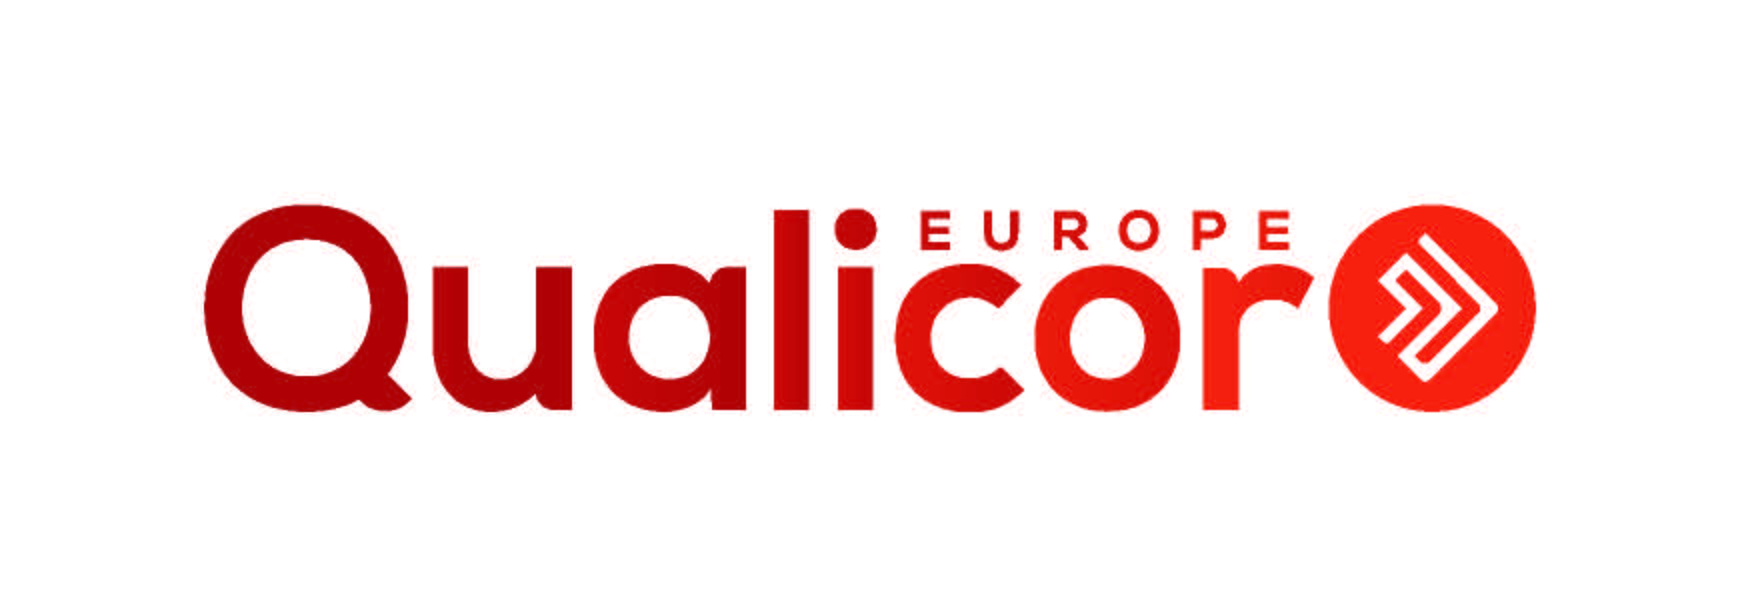 qualicor-europe-logo-rgb.jpg